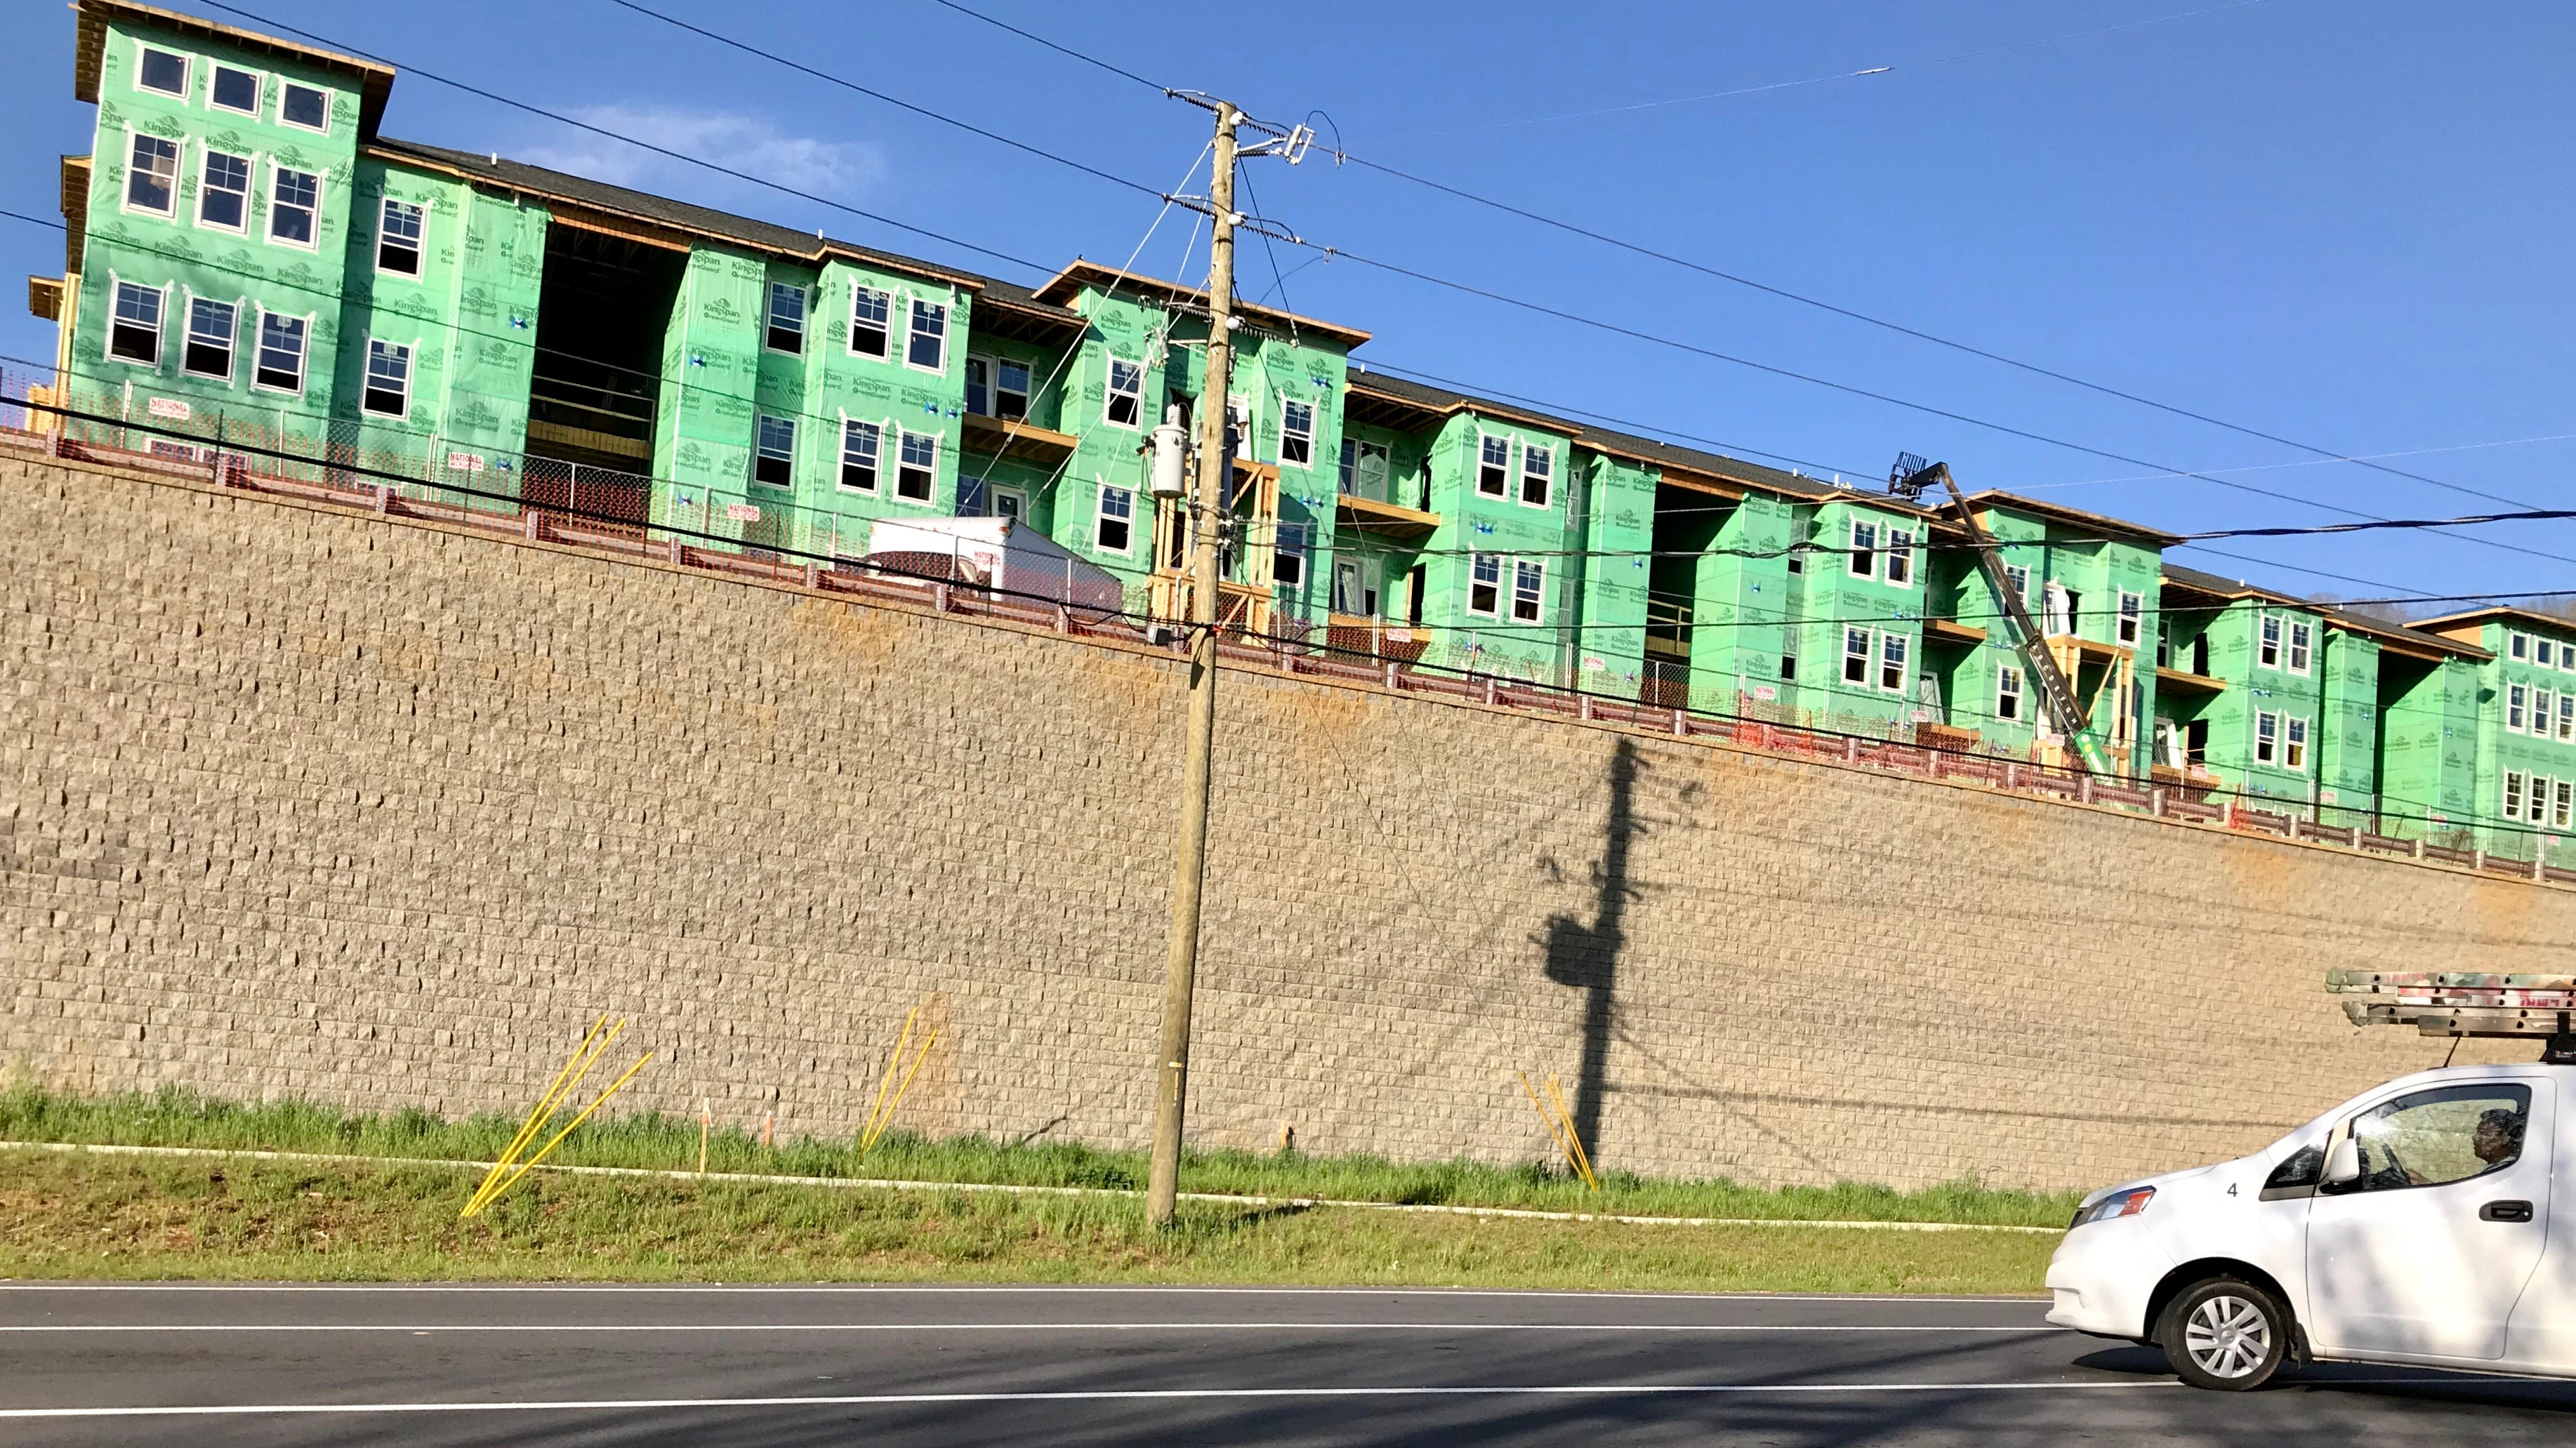 A berm and greenery will be installed along the large wall fronting the Hawthorne at Mills Gap apartments, but not until construction is wrapping up.